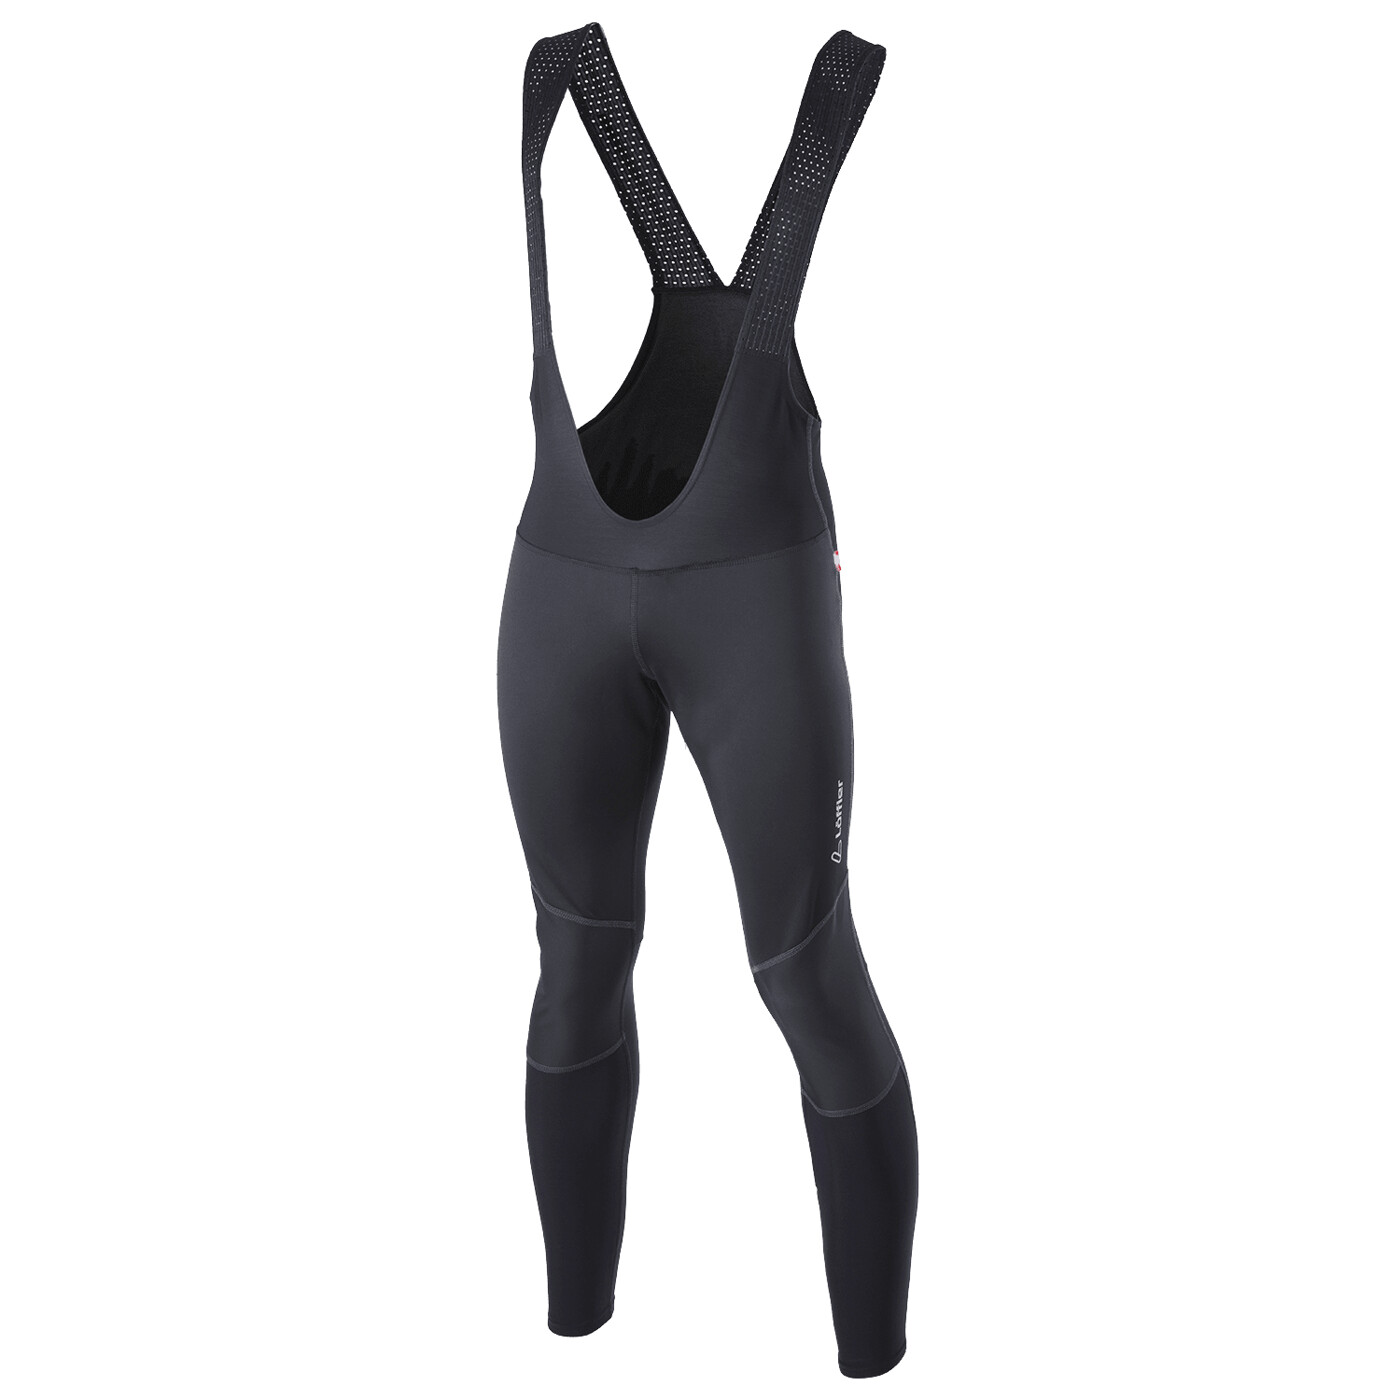 LÖFFLER M BIKE BIB TIGHTS EVO ELASTIC - Herren